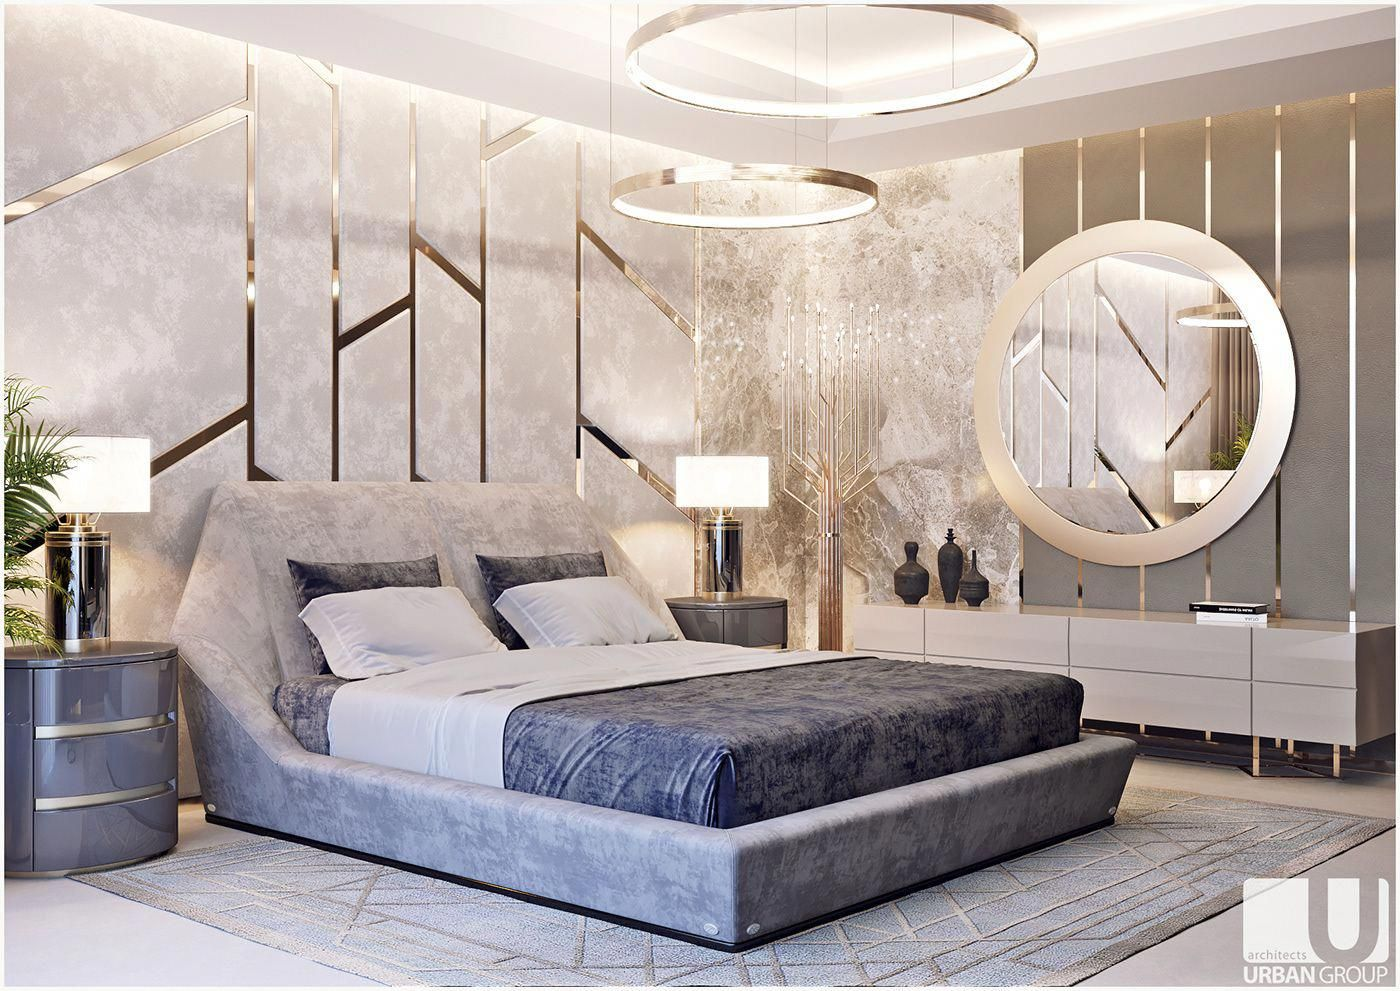 Design Tips To Create Your Most Luxurious Bedroom